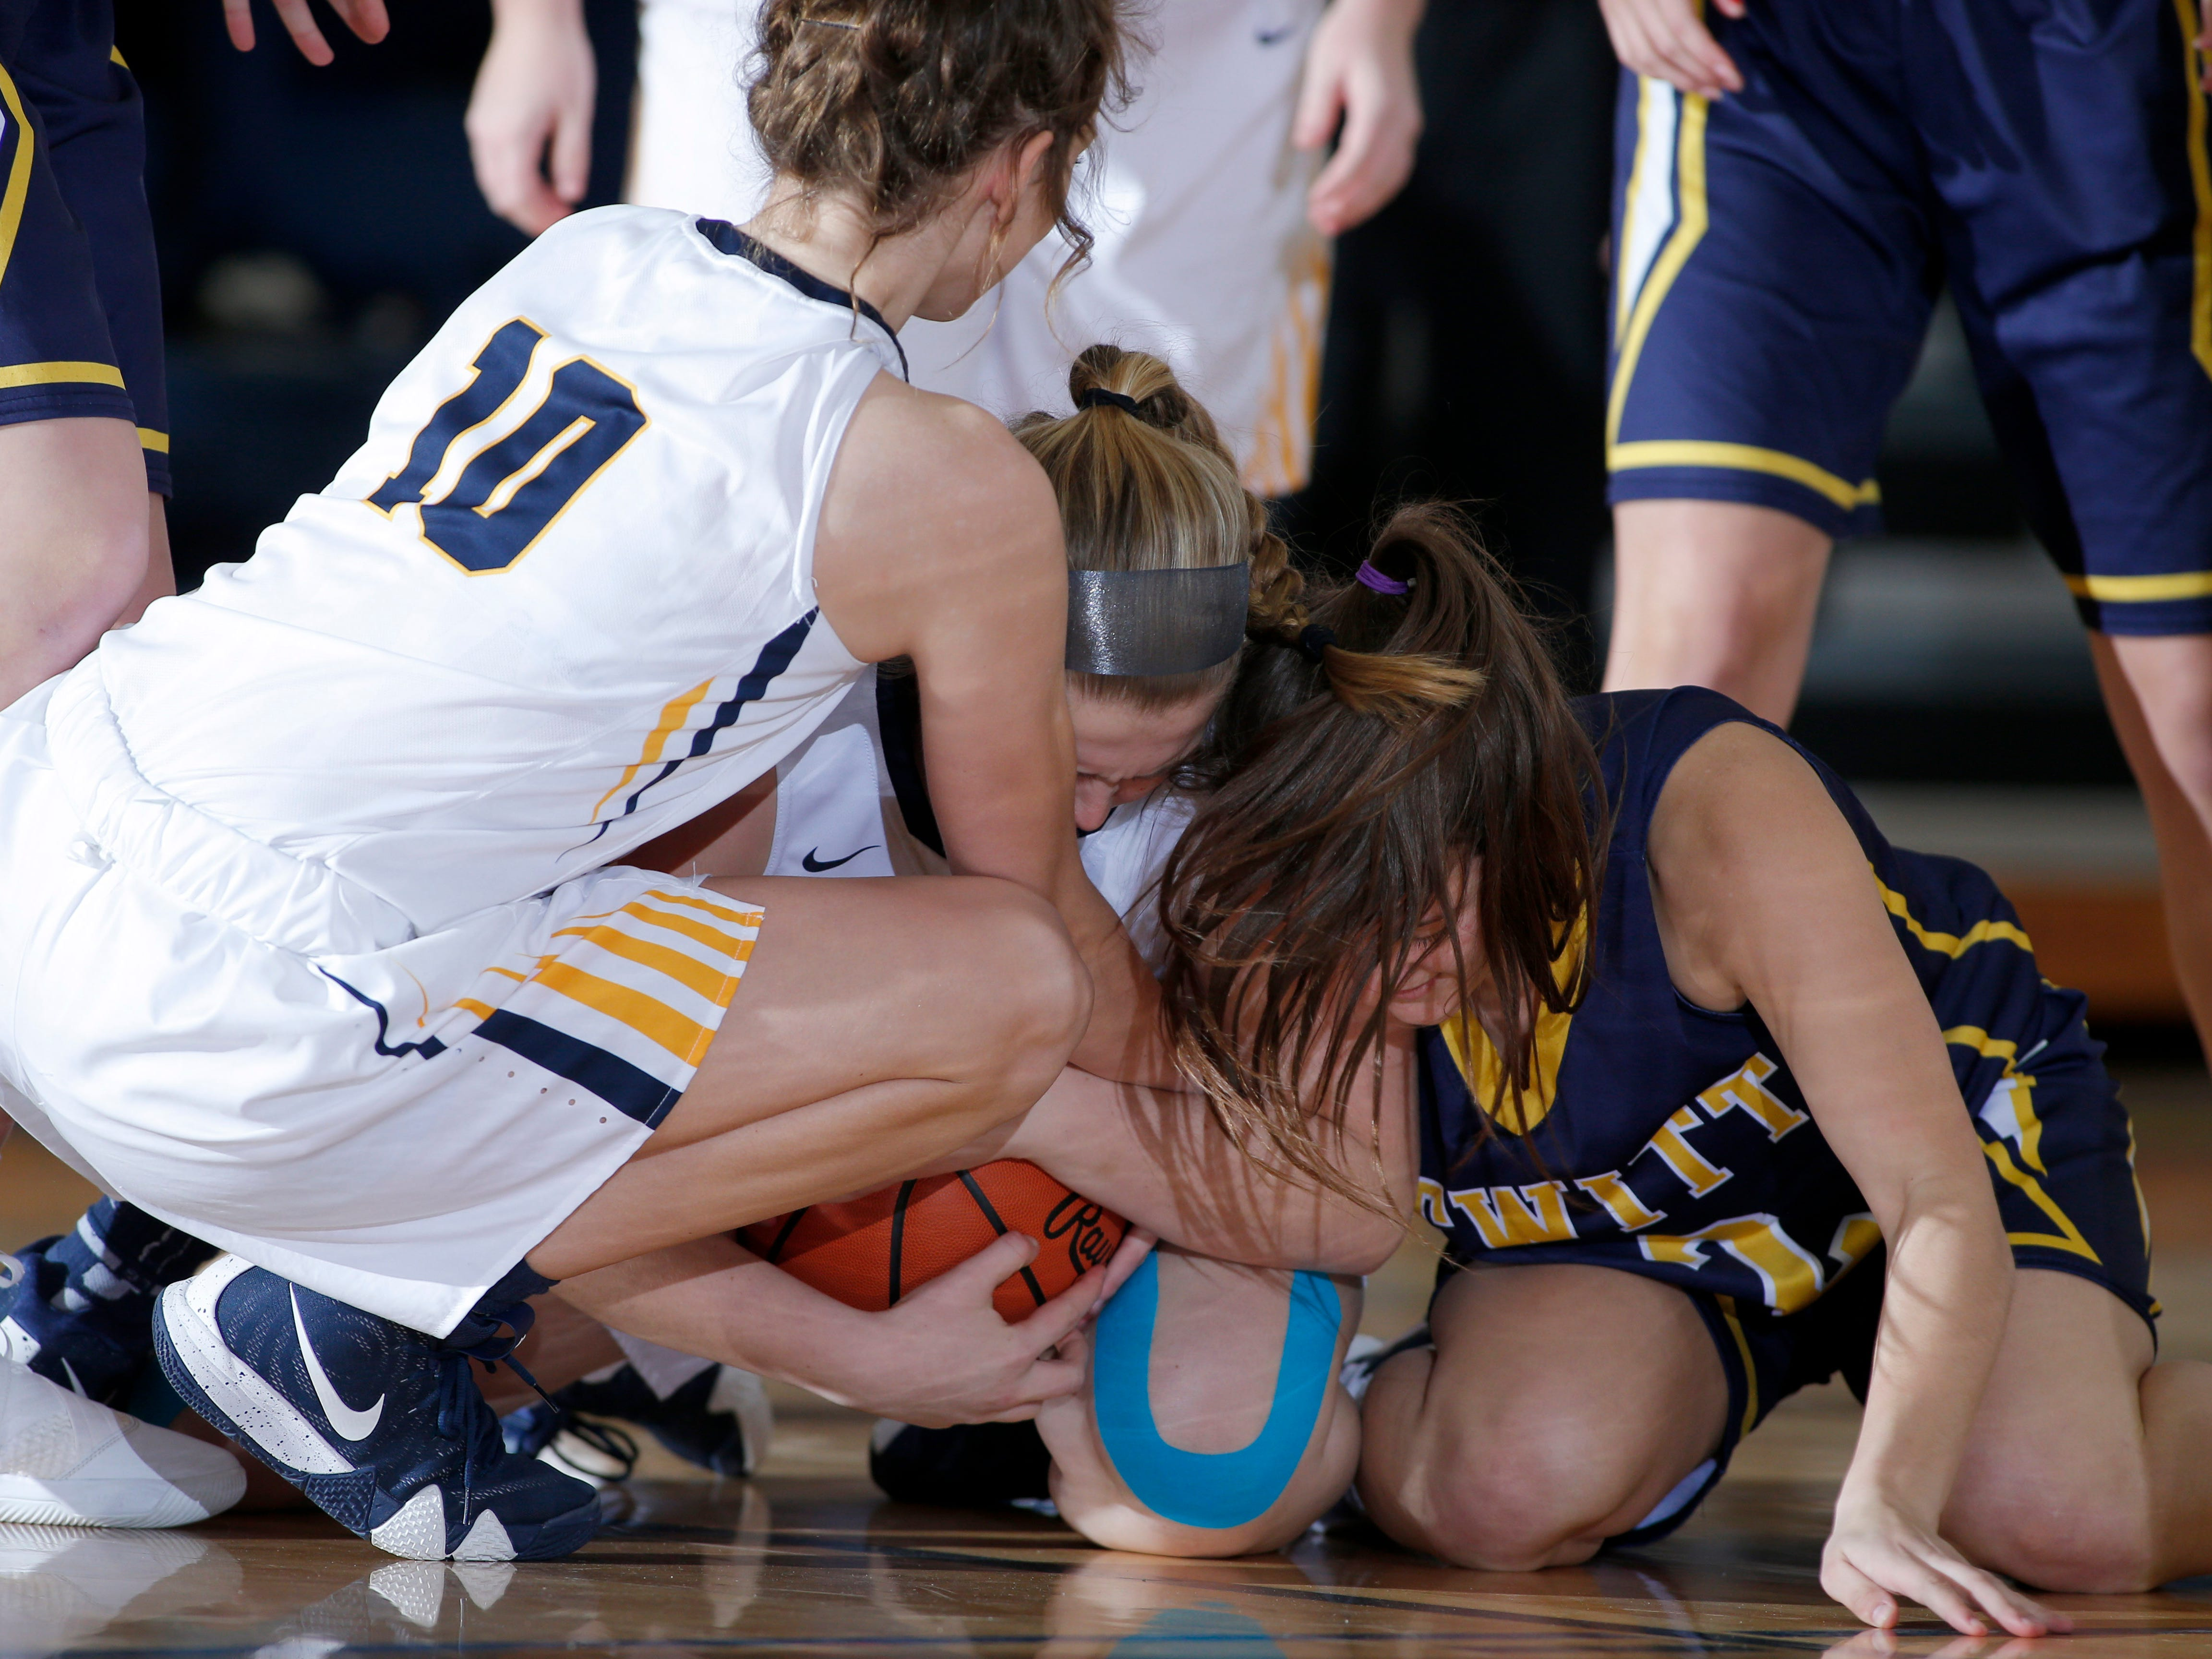 Grand Ledge's Shaelyn Sage, center, and Ali Spalding, left, and DeWitt's Olivia Reid, right, wrestle for the ball, Tuesday, Jan. 15, 2019, in Grand Ledge, Mich.